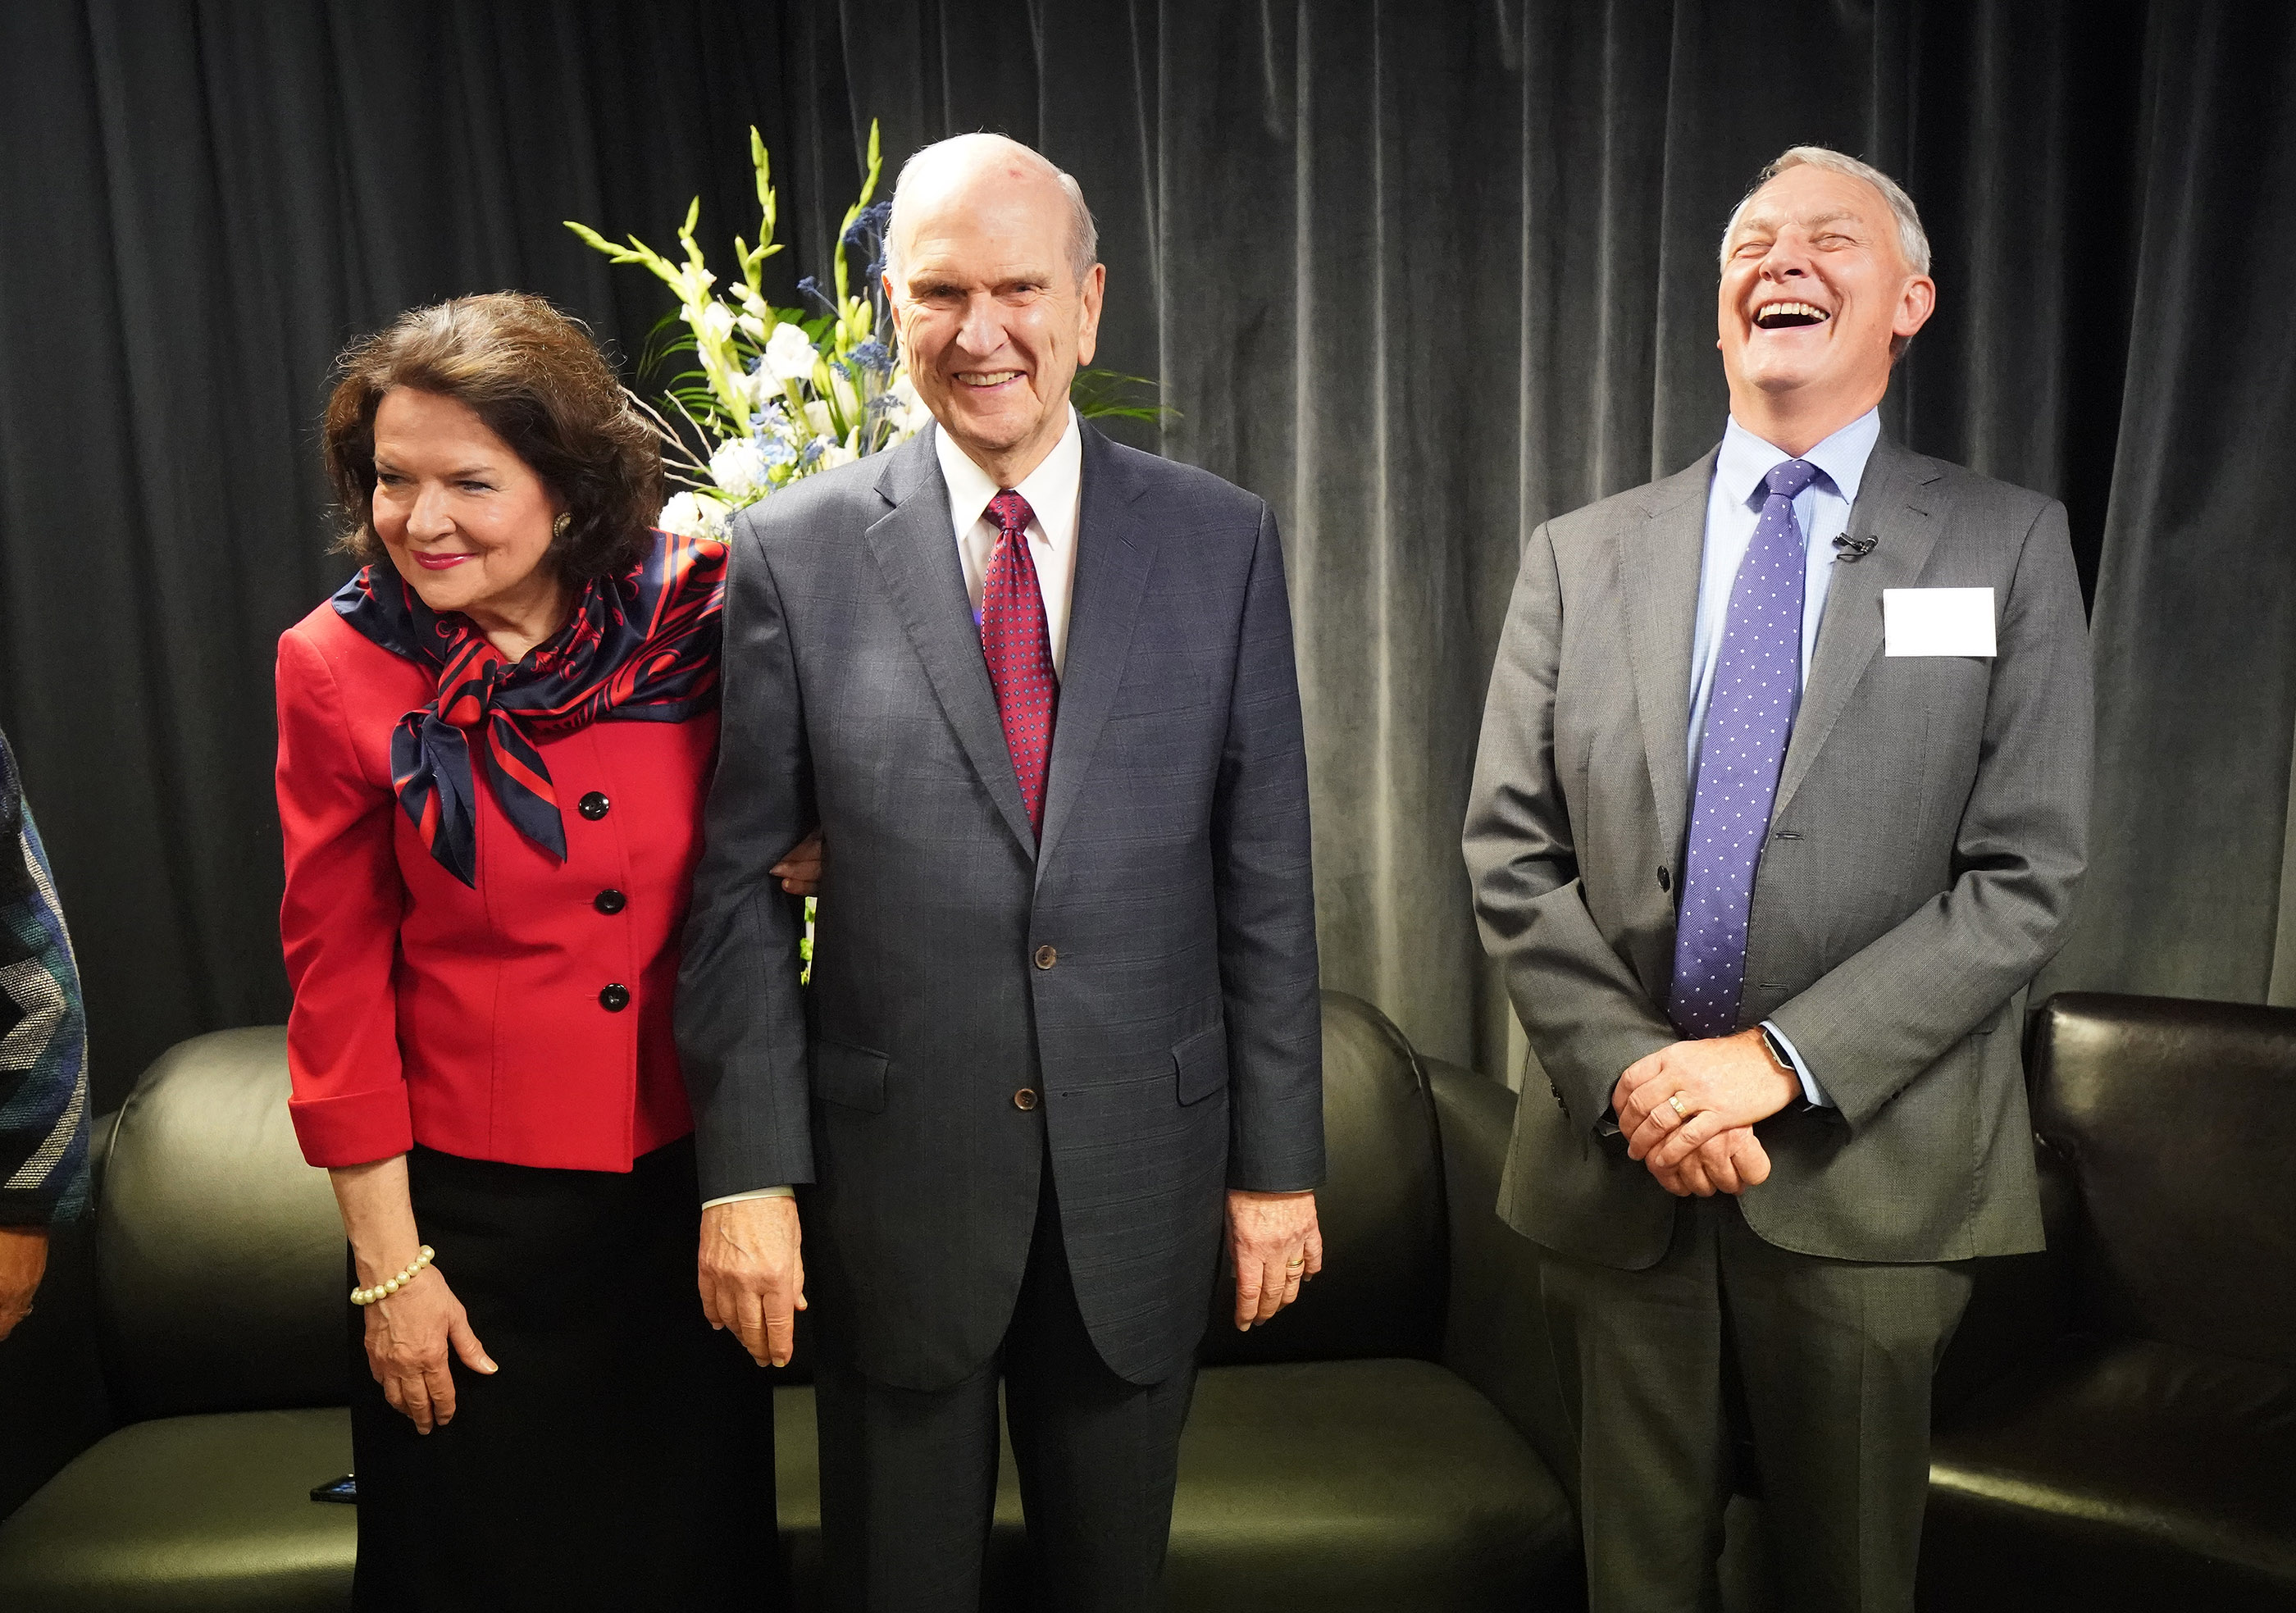 President Russell M. Nelson of The Church of Jesus Christ of Latter-day Saints and his wife, Sister Wendy Nelson, laugh with Auckland Mayor Phil Goff prior to a devotional at Spark Arena in Auckland, New Zealand, on May 21, 2019.